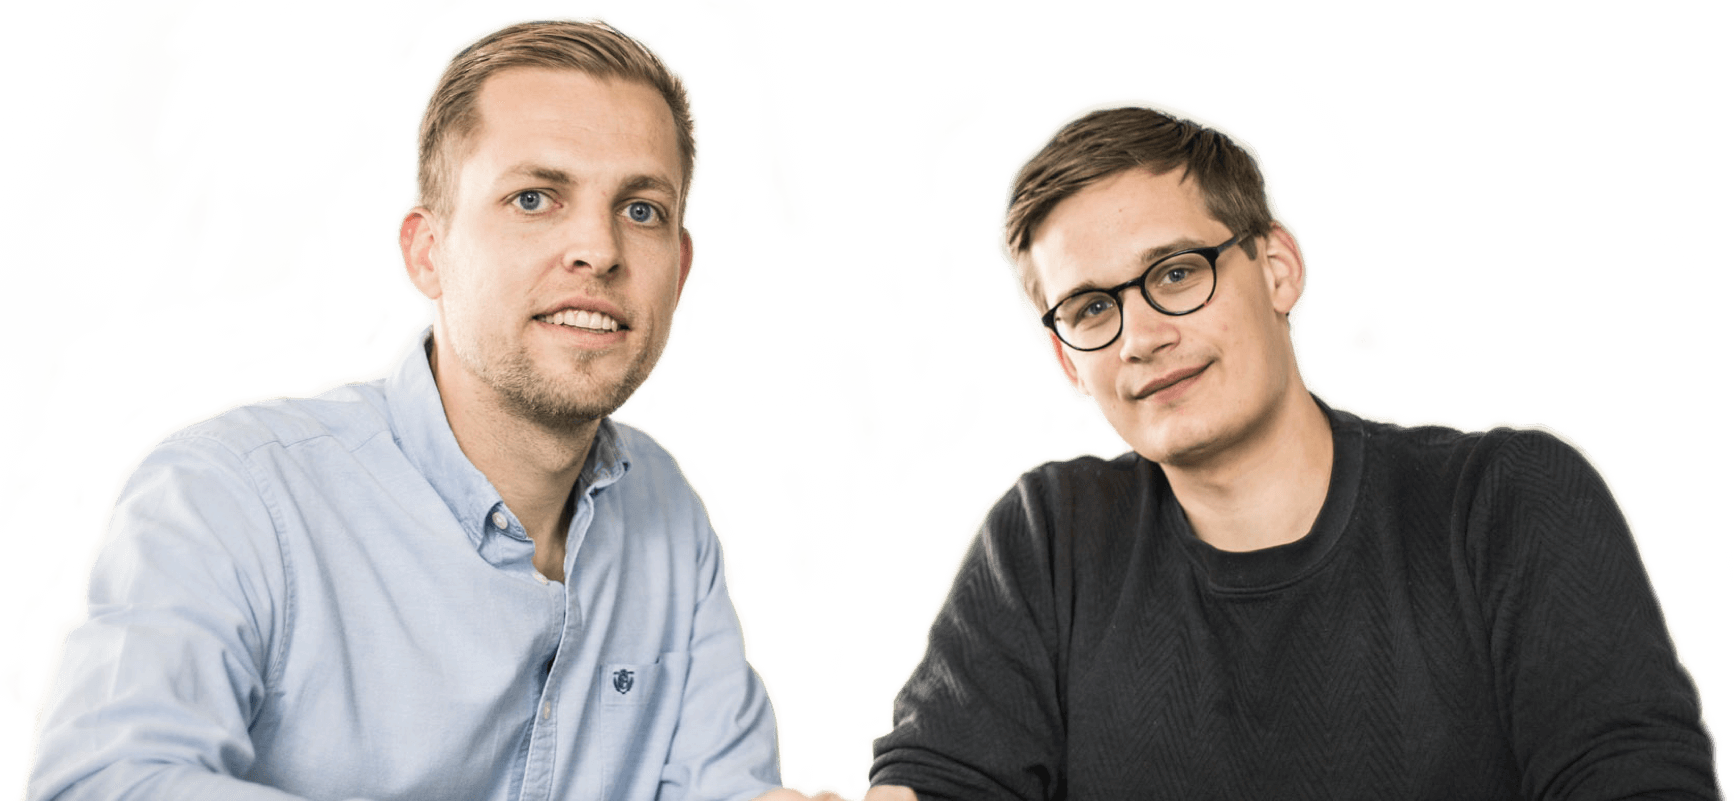 Bo and Emil, EasyPractice founders